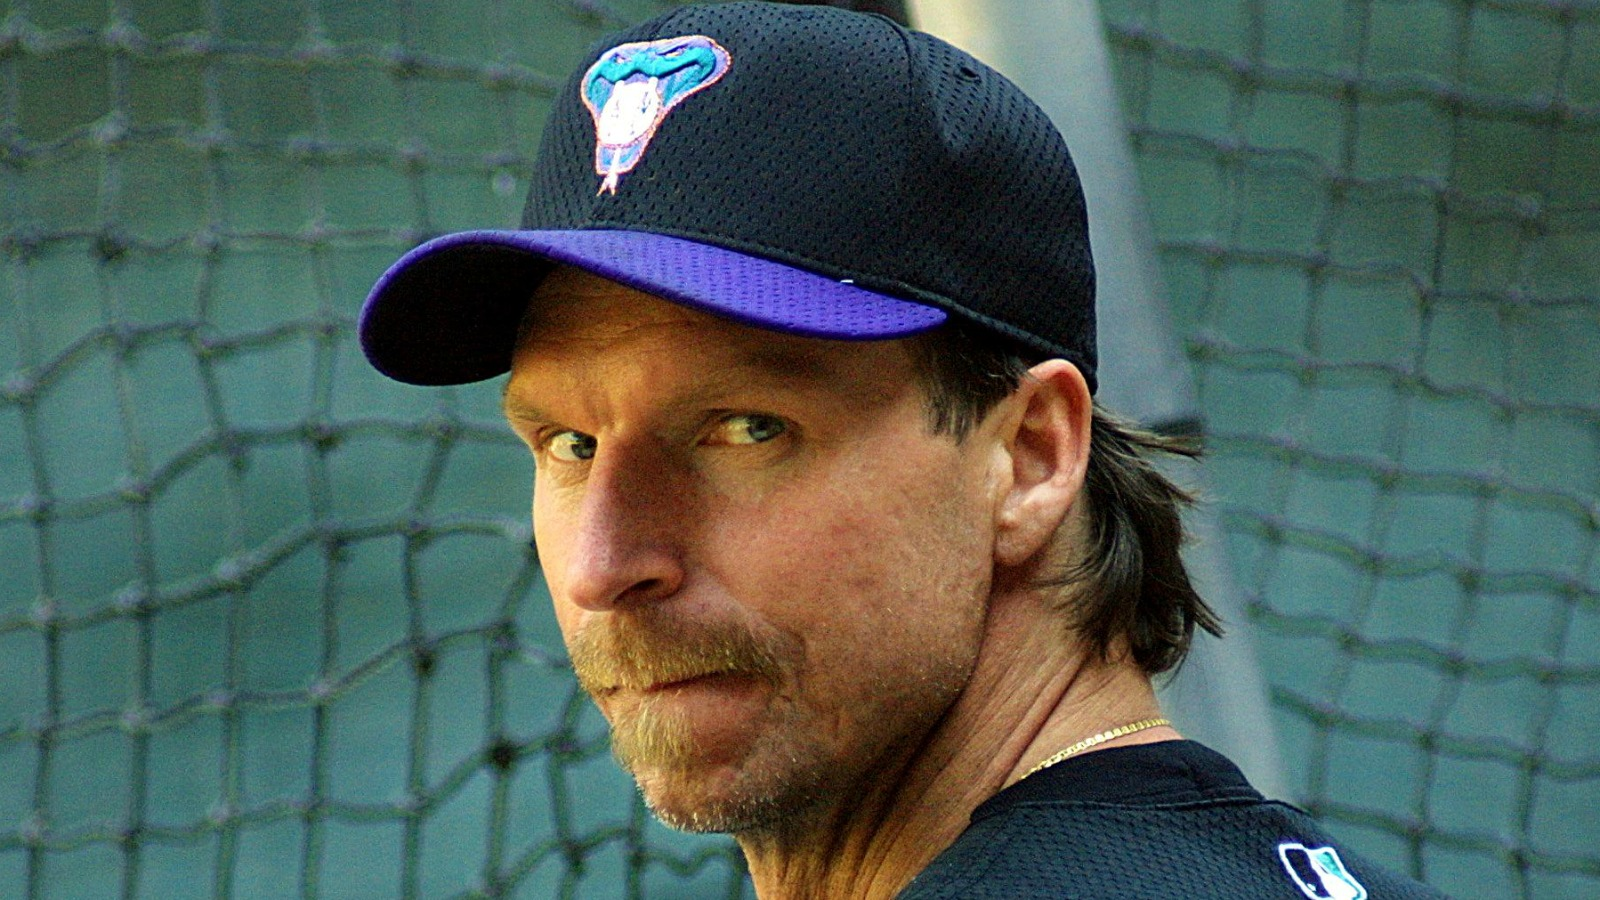 051816-Arizona-Diamondbacks-Randy-Johnson